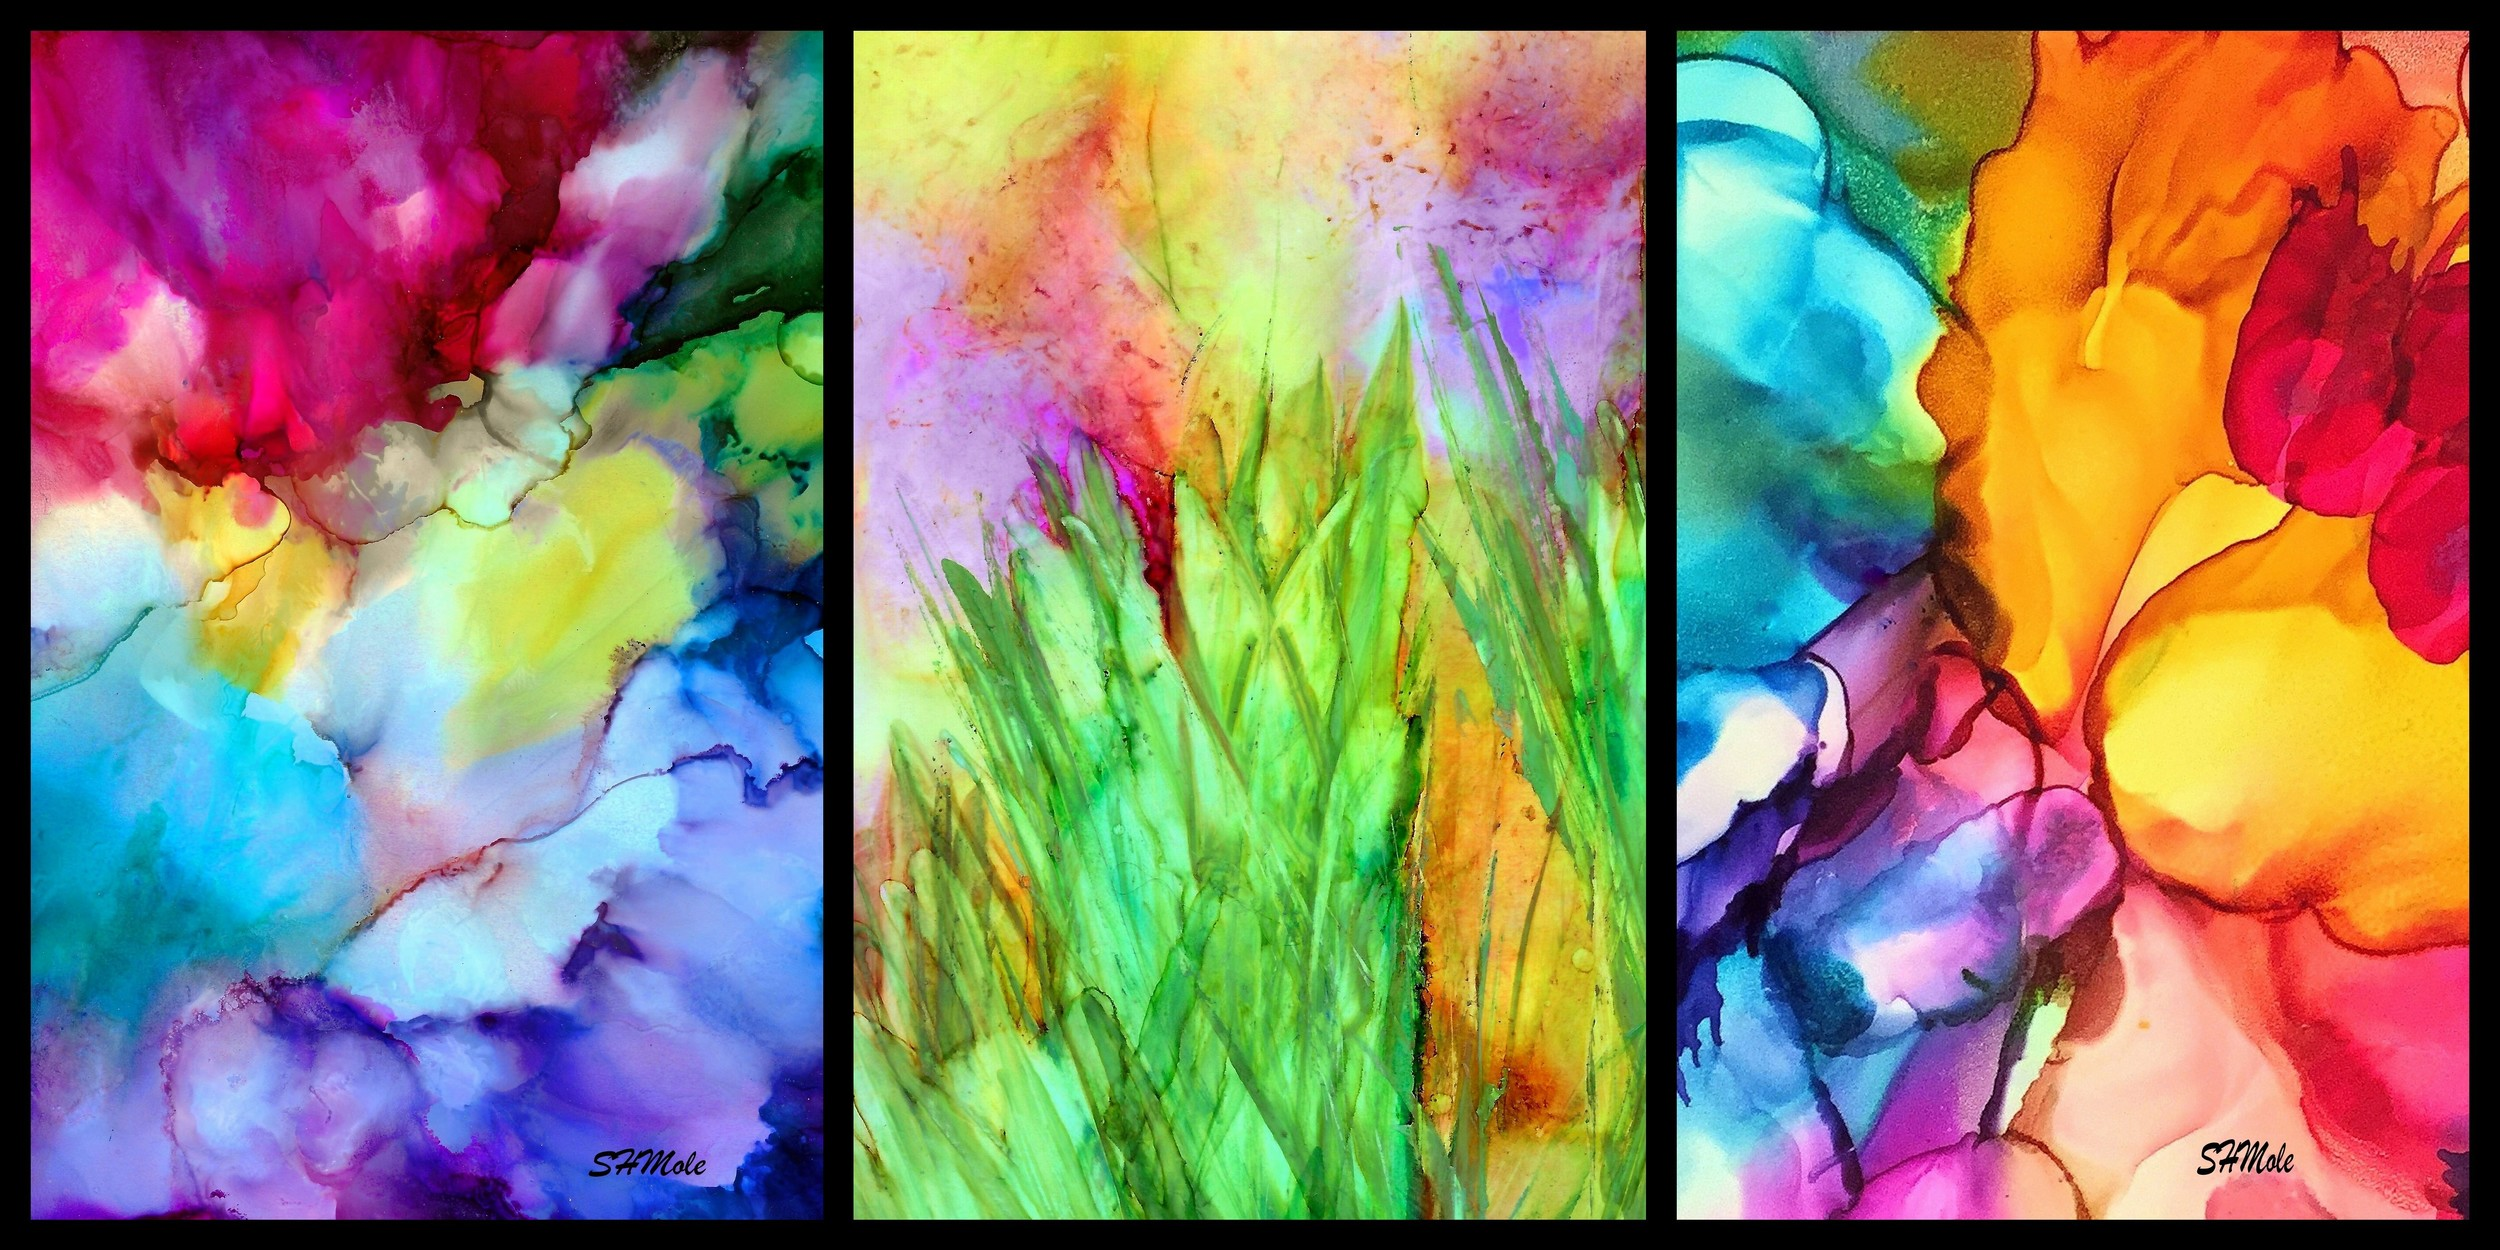 Details from Alcohol Inks images on Yupo paper by SUZ!